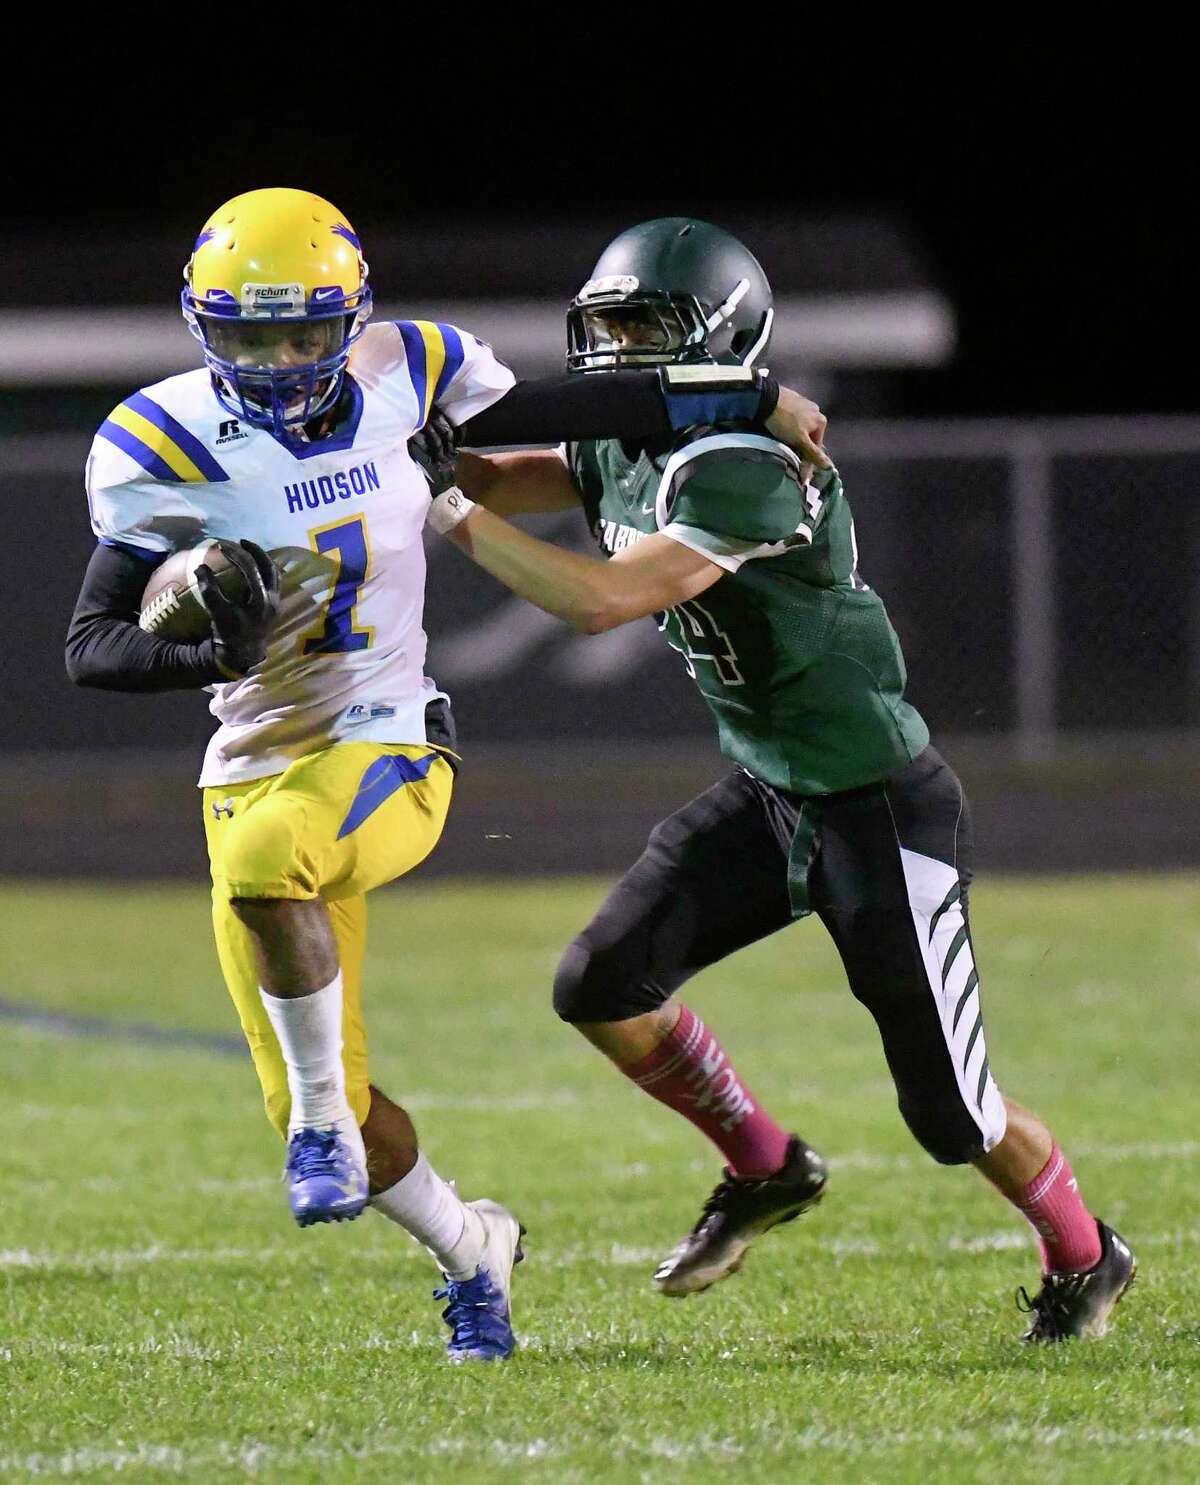 Hudson's Jose Wallace (1) runs the ball past Schalmont's Gannon Strube (24) during a Section II Class B High School football game Tuesday, Oct. 16, 2018, in Colonie, N.Y. (Hans Pennink / Special to the Times Union)